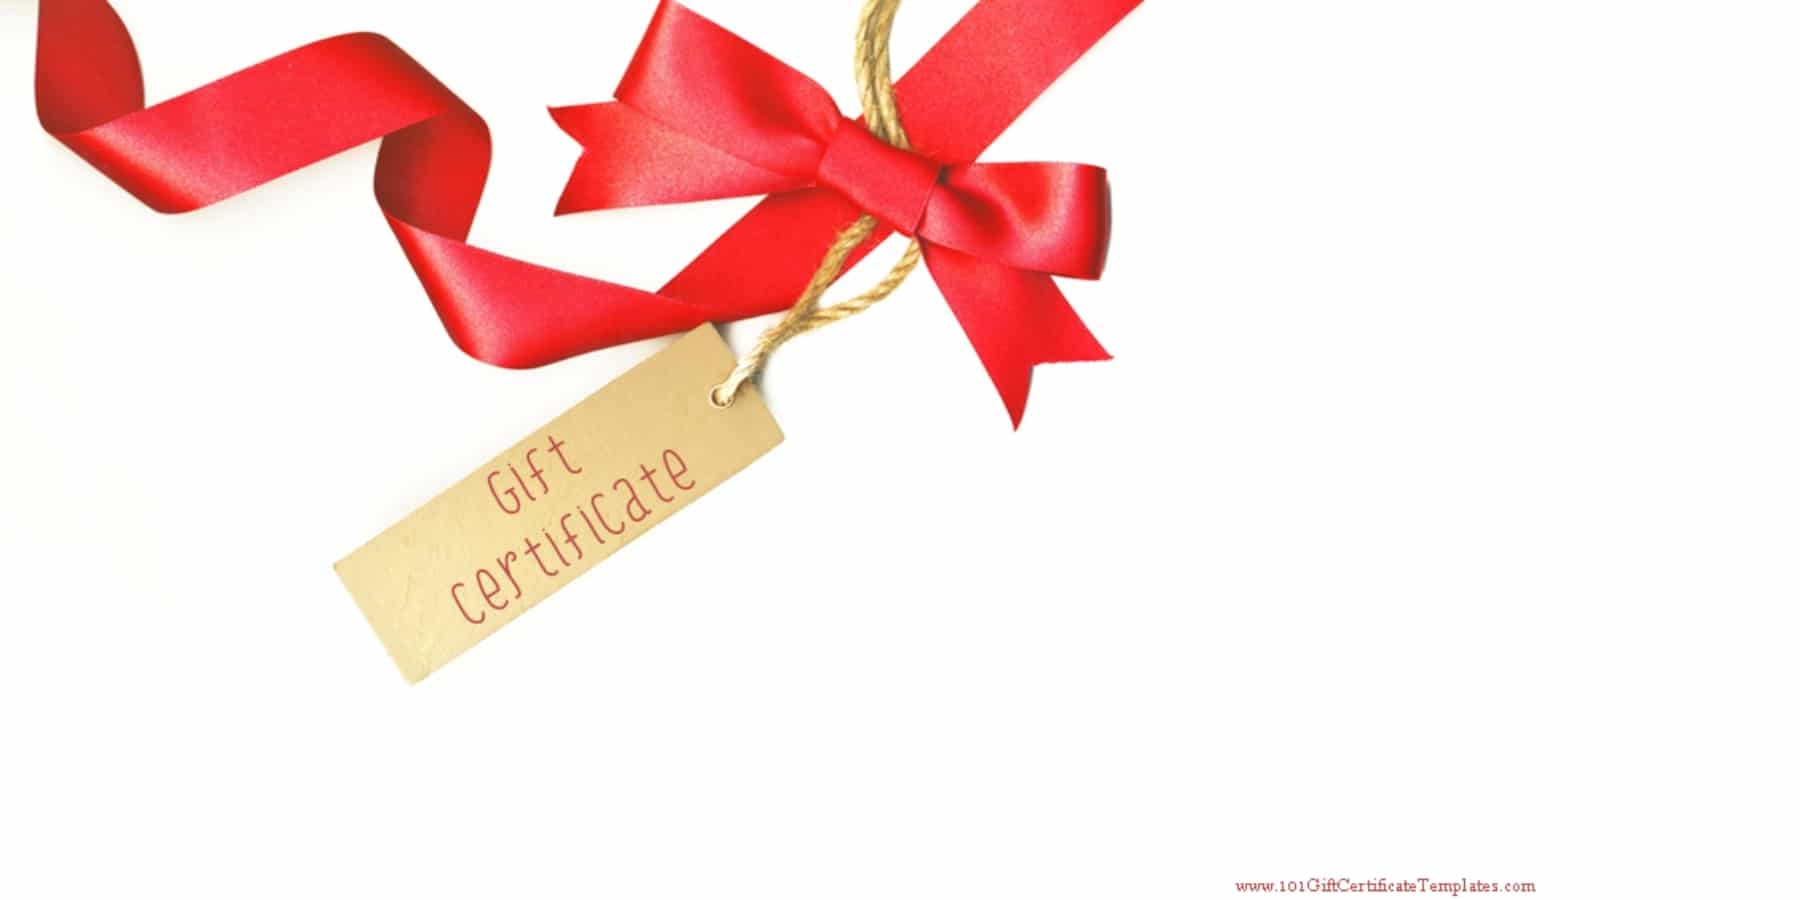 Printable gift certificate templates gift card which can be customized in any way with our gift card maker yadclub